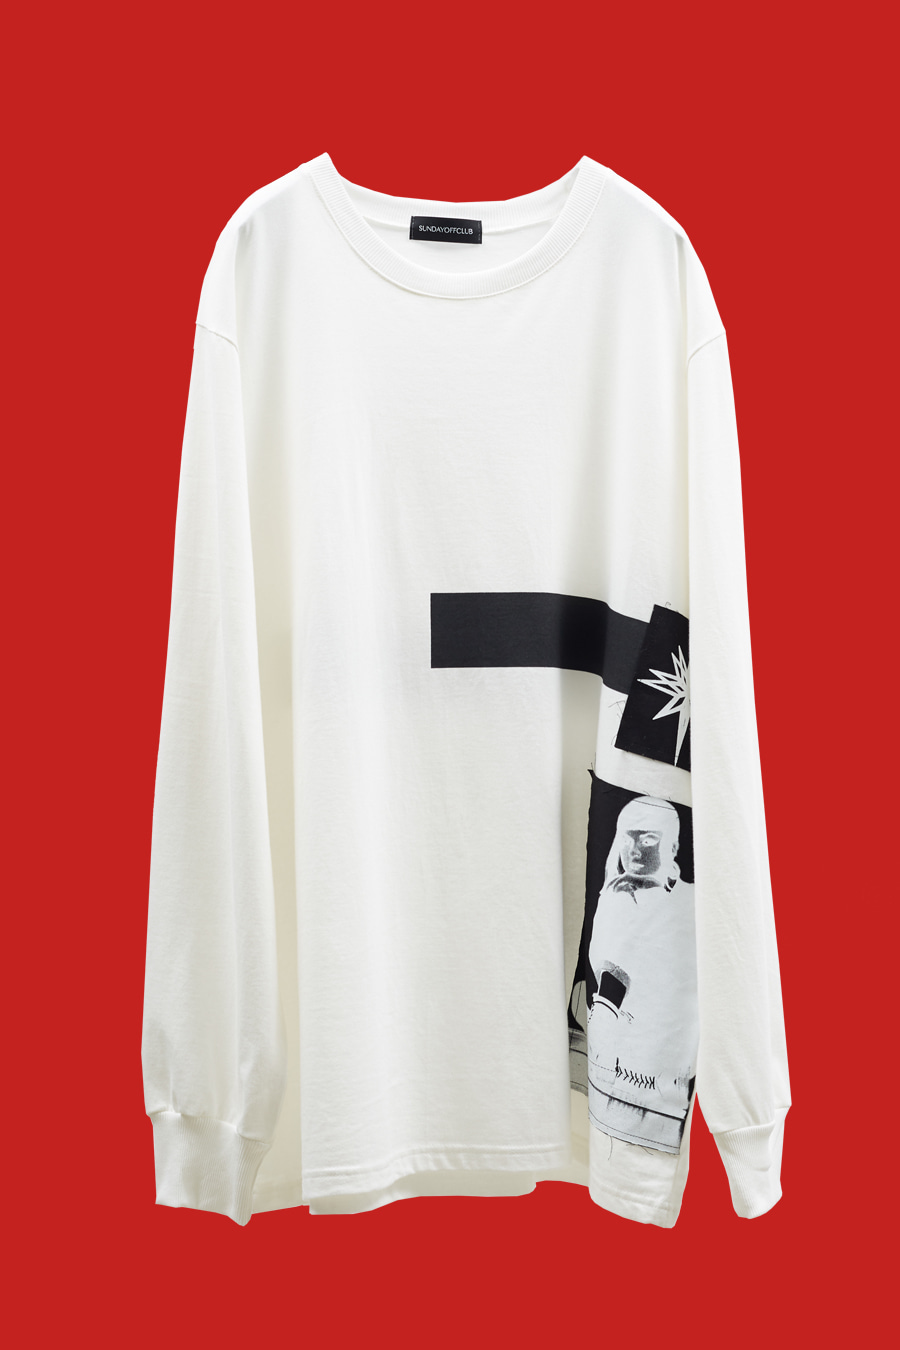 Season Patch Details Line Artwork LST-shirt - White